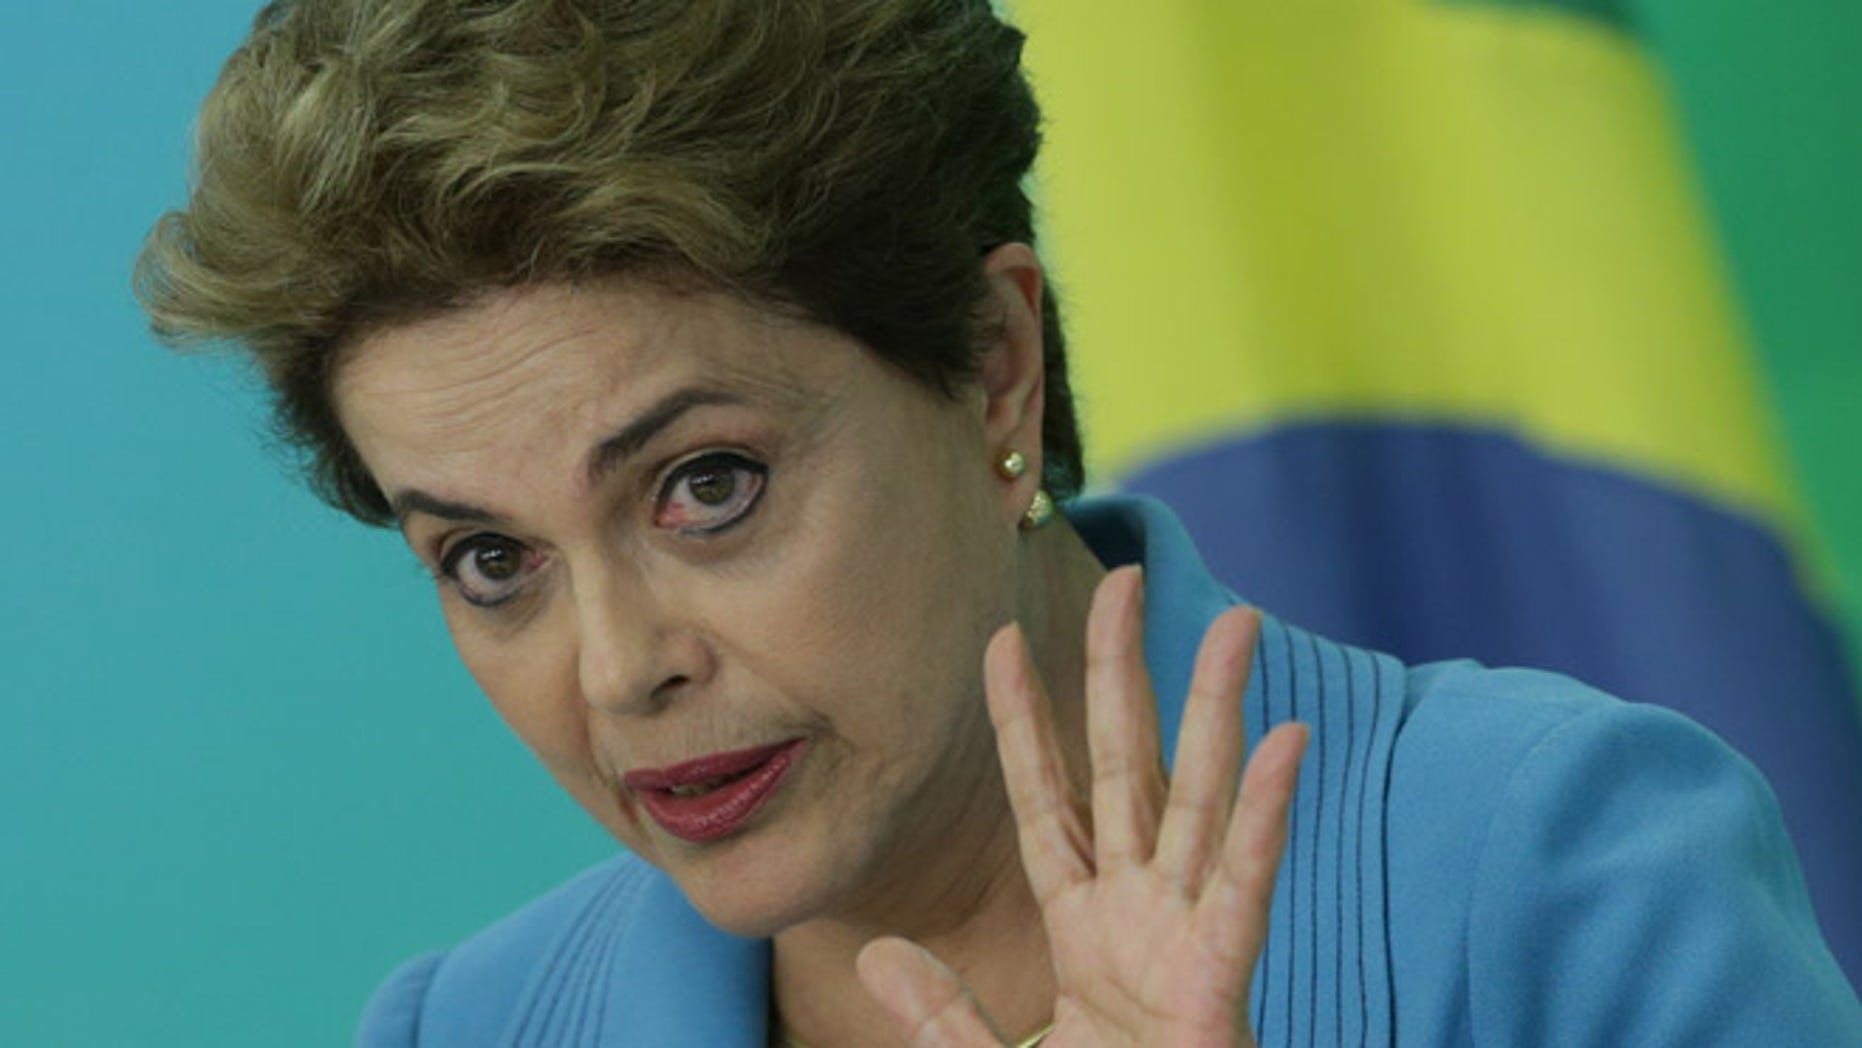 Brazil's President Dilma Rousseff during a press conference at Planalto Presidential Palace, in Brasilia, April 18, 2016.